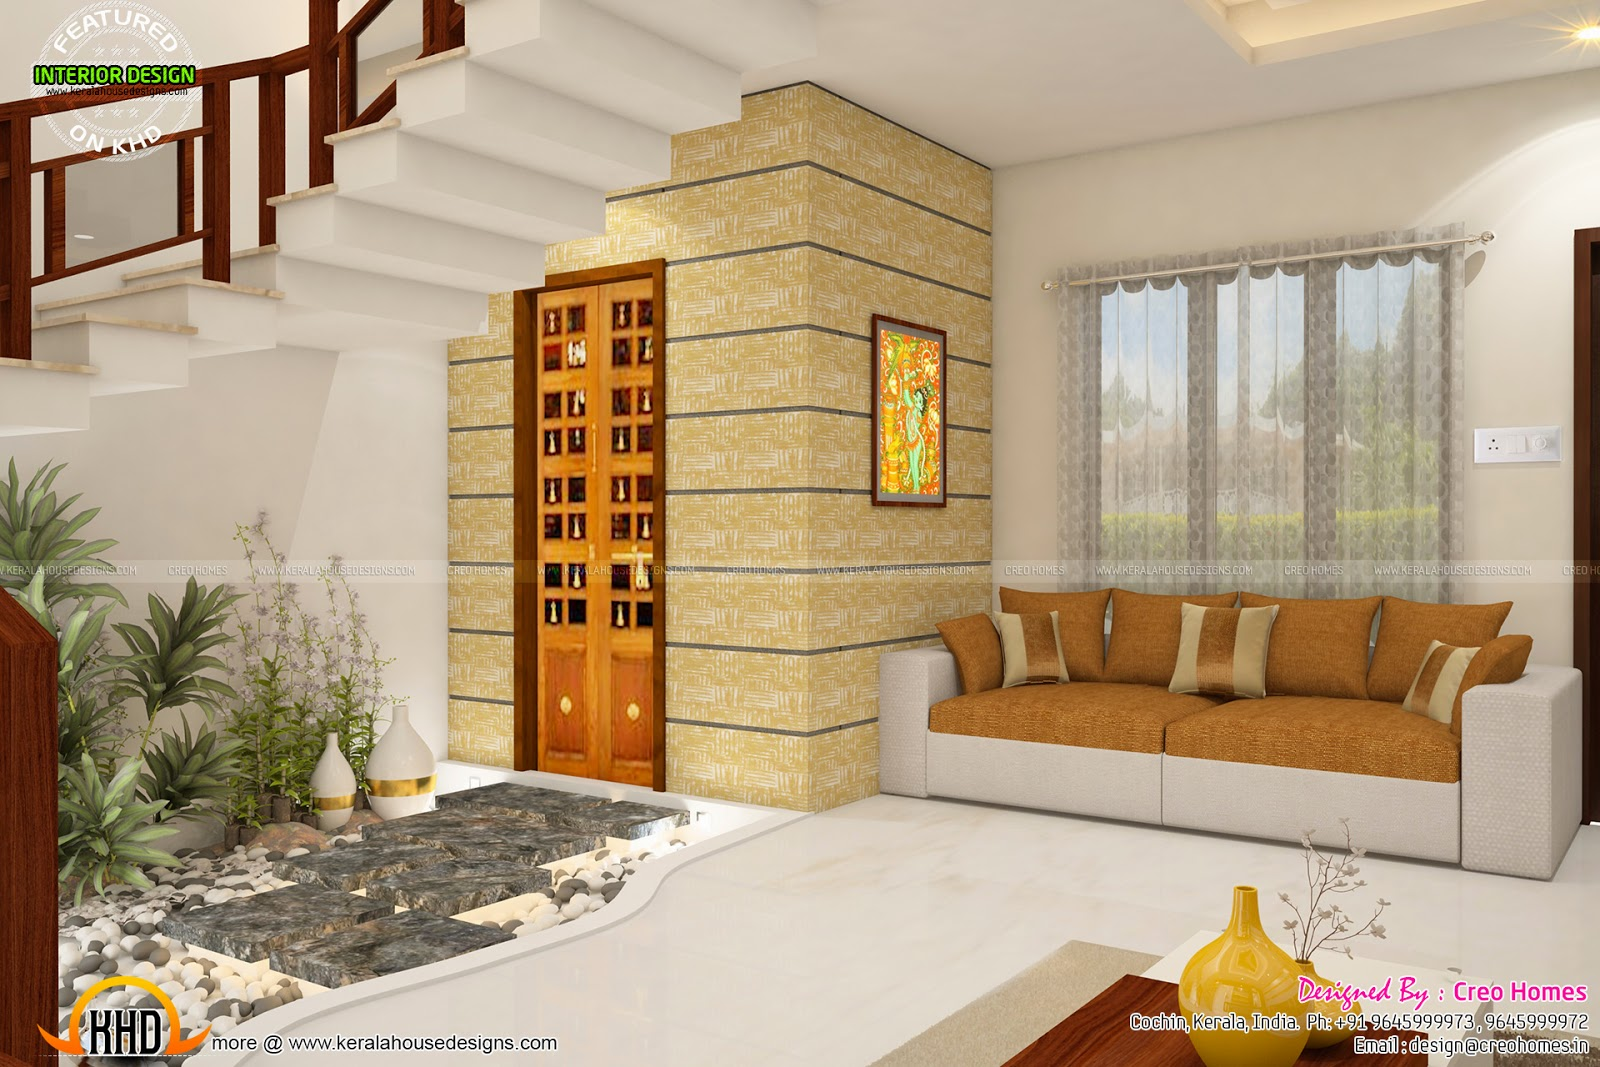 Total home interior solutions by creo homes kerala home for House interior design ideas for small house